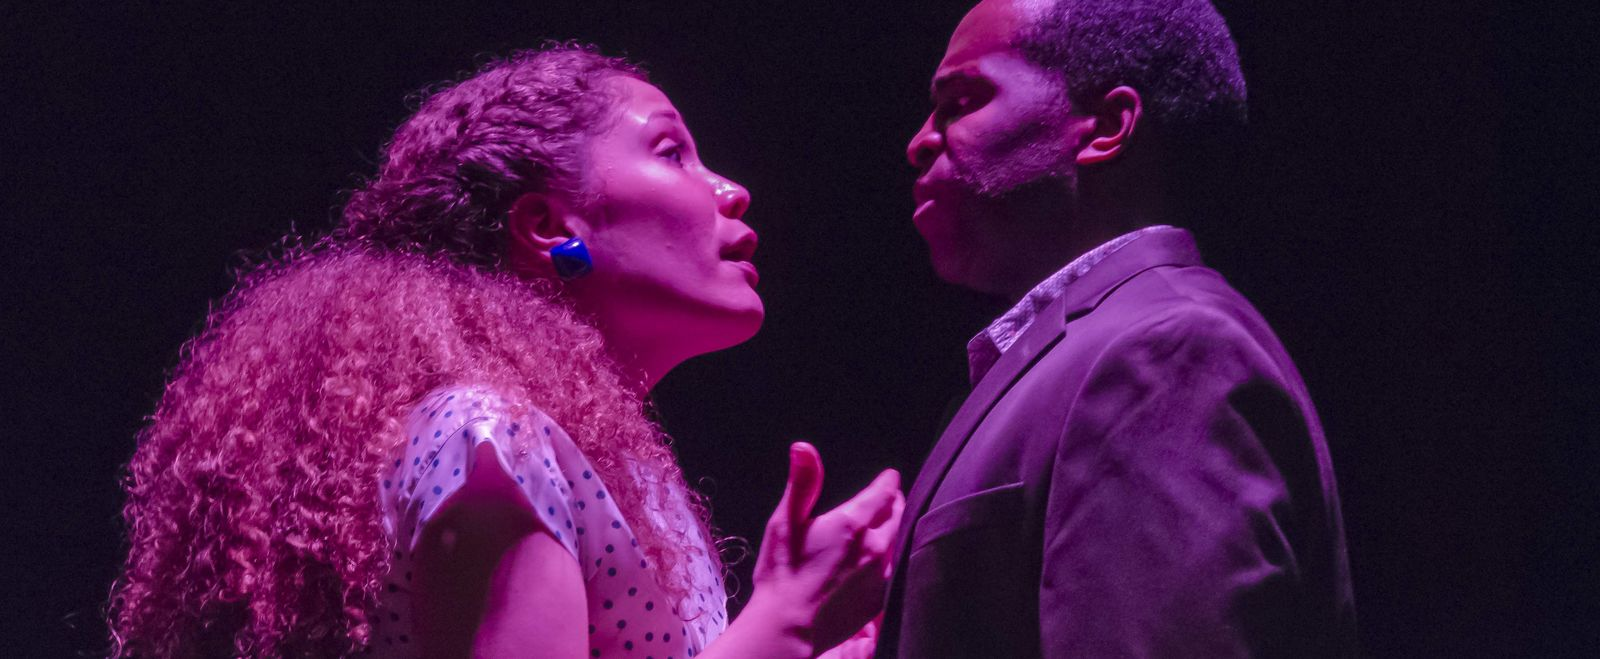 """A man and woman perform in a play called """"Lost Tempo"""" on stage."""